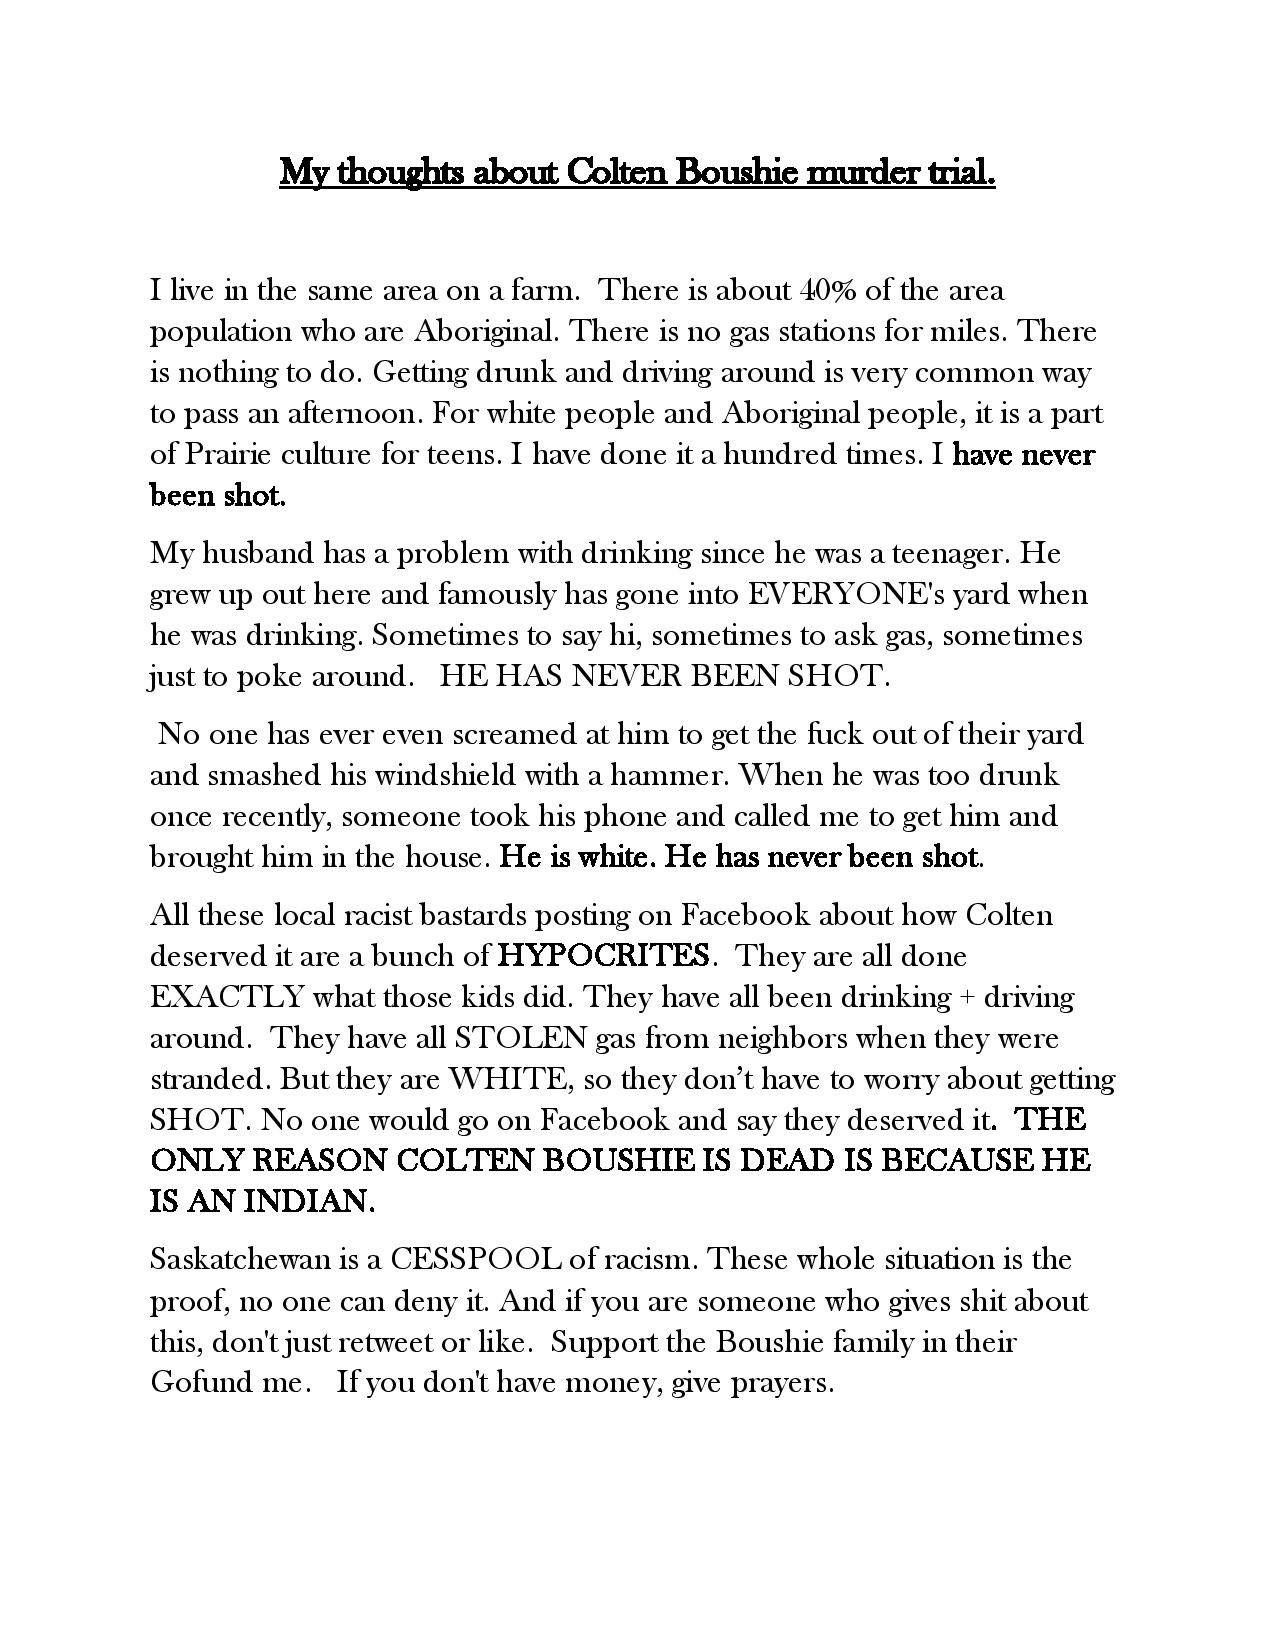 Pin By Valerie Genaille On Decolonize Me Examples Of Descriptive Writing Essay Writing Examples Creative Writing Essays